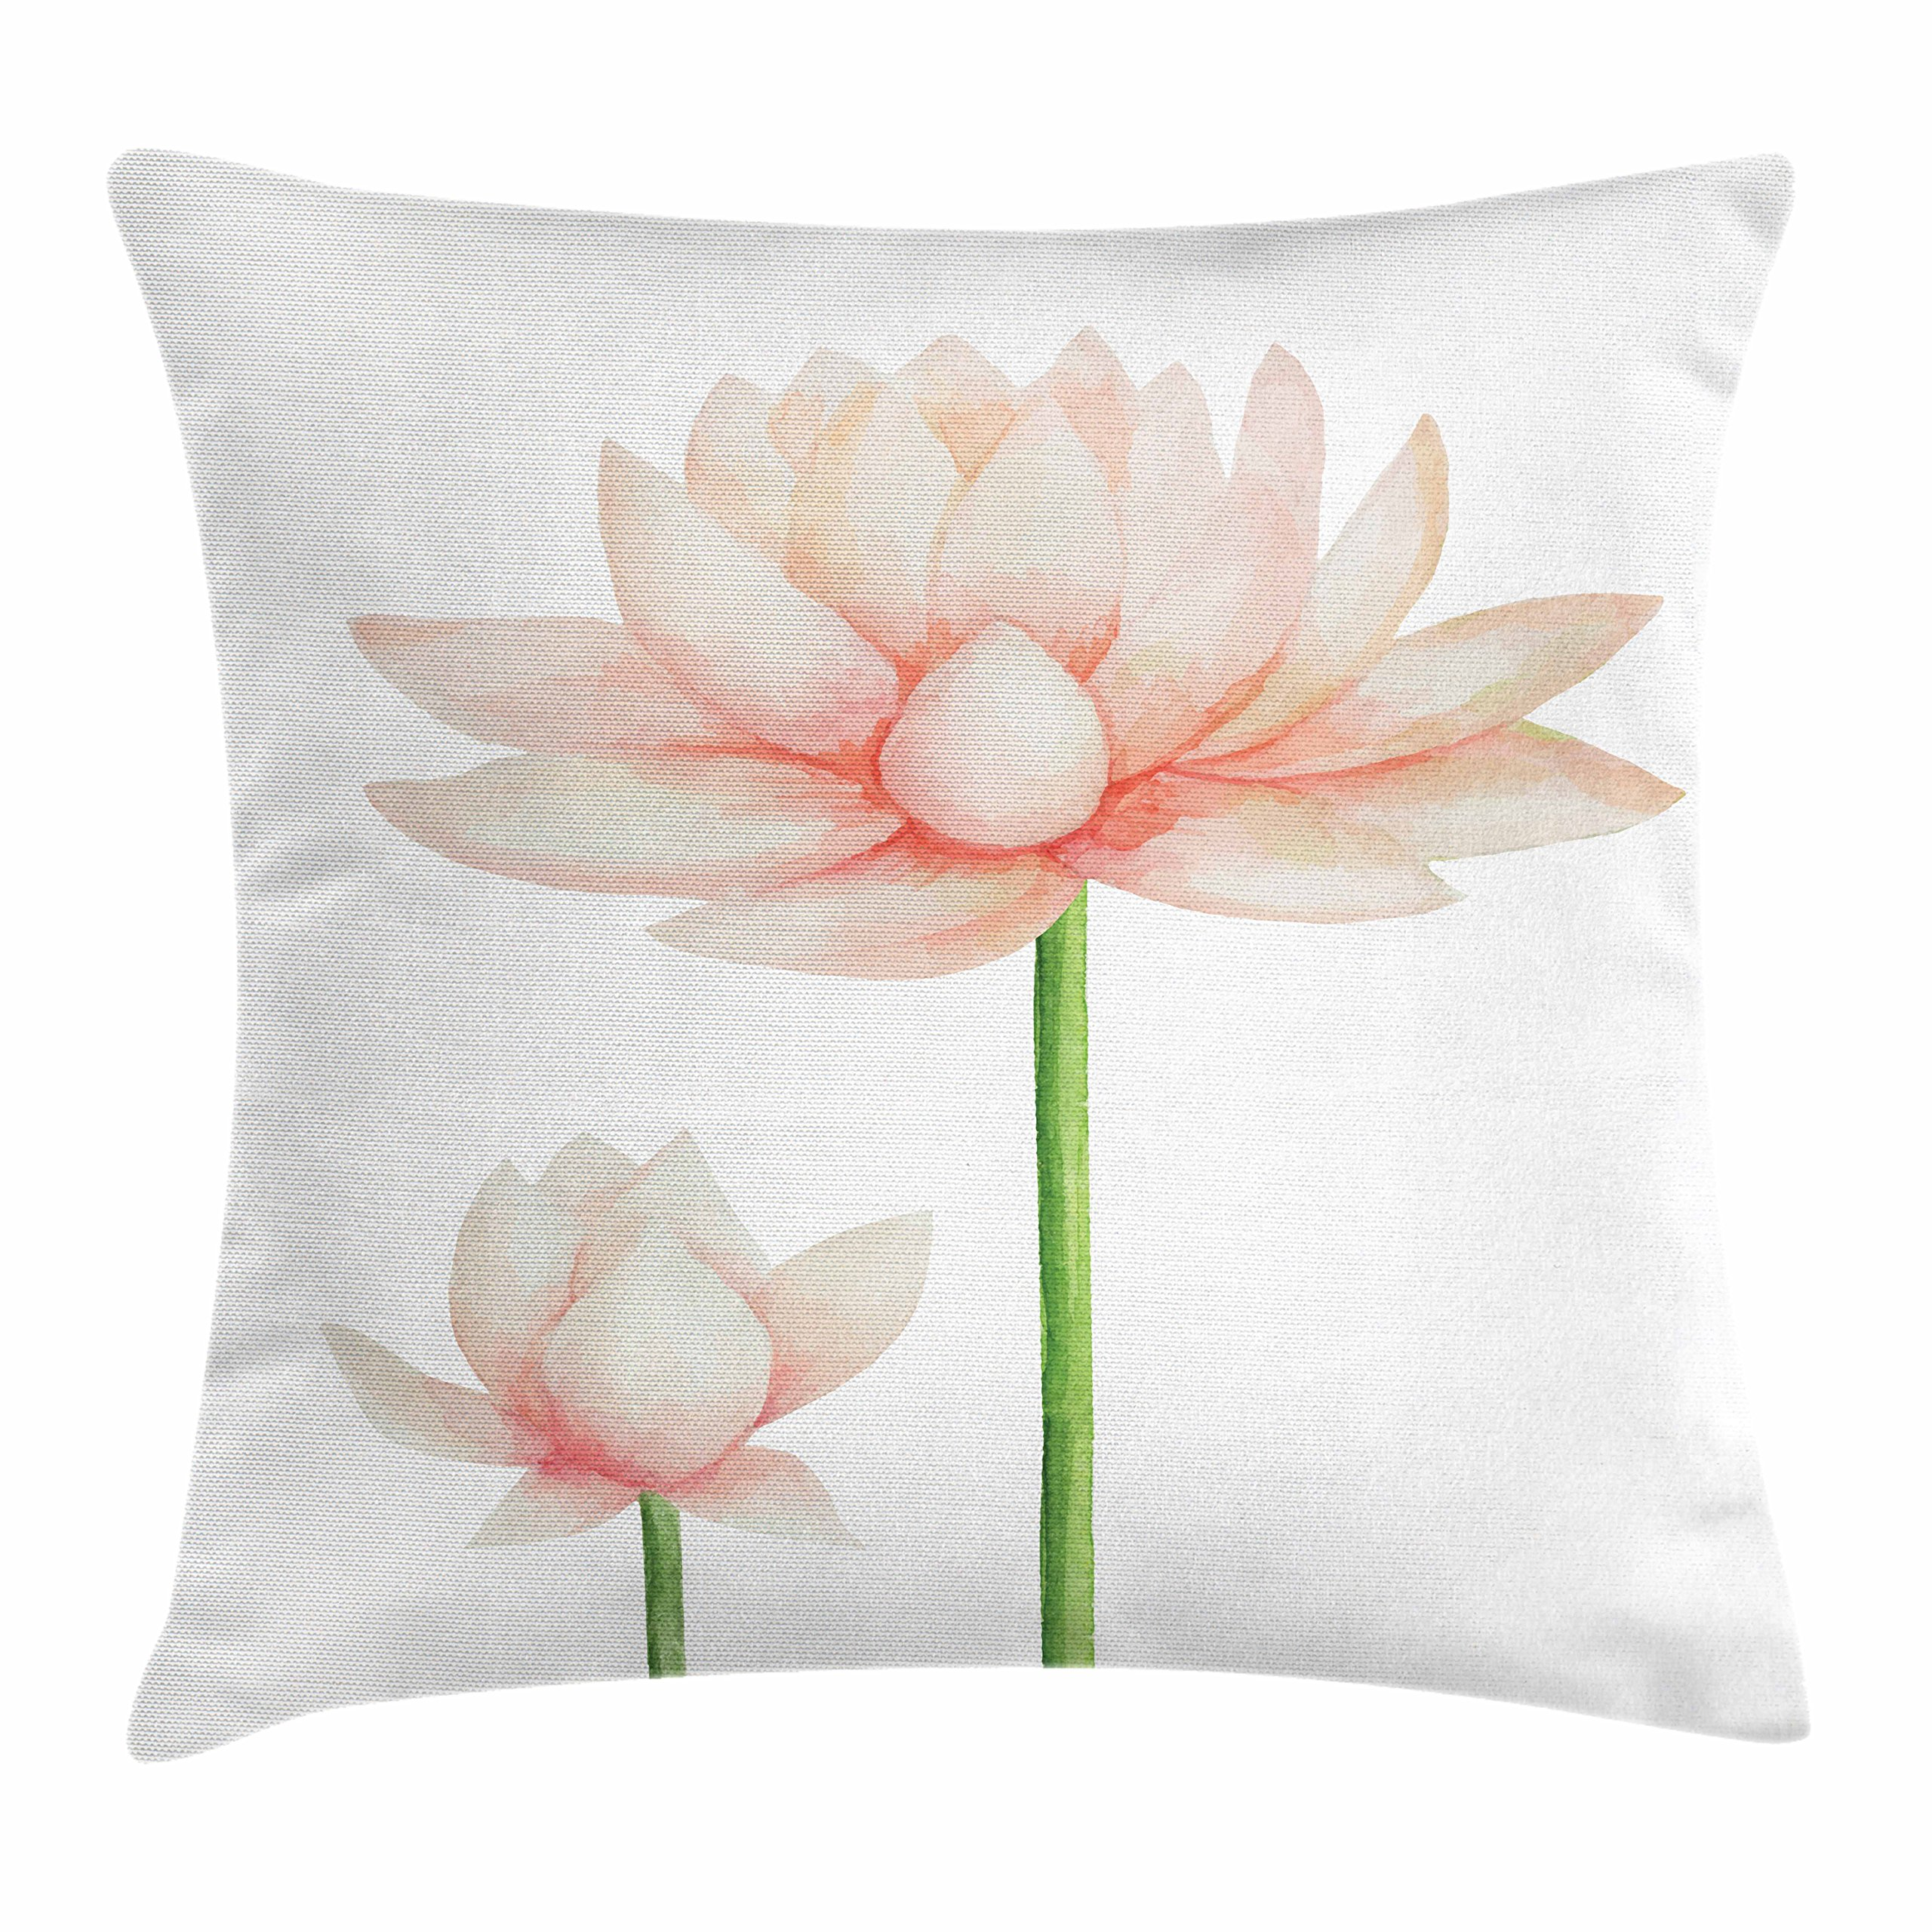 Ambesonne Yoga Throw Pillow Cushion Cover, Pastel Colored Blooming Lotus Flower Romantic Fresh Garden Plant Spa Theme, Decorative Square Accent Pillow Case, 24 X 24 Inches, Peach Green and White